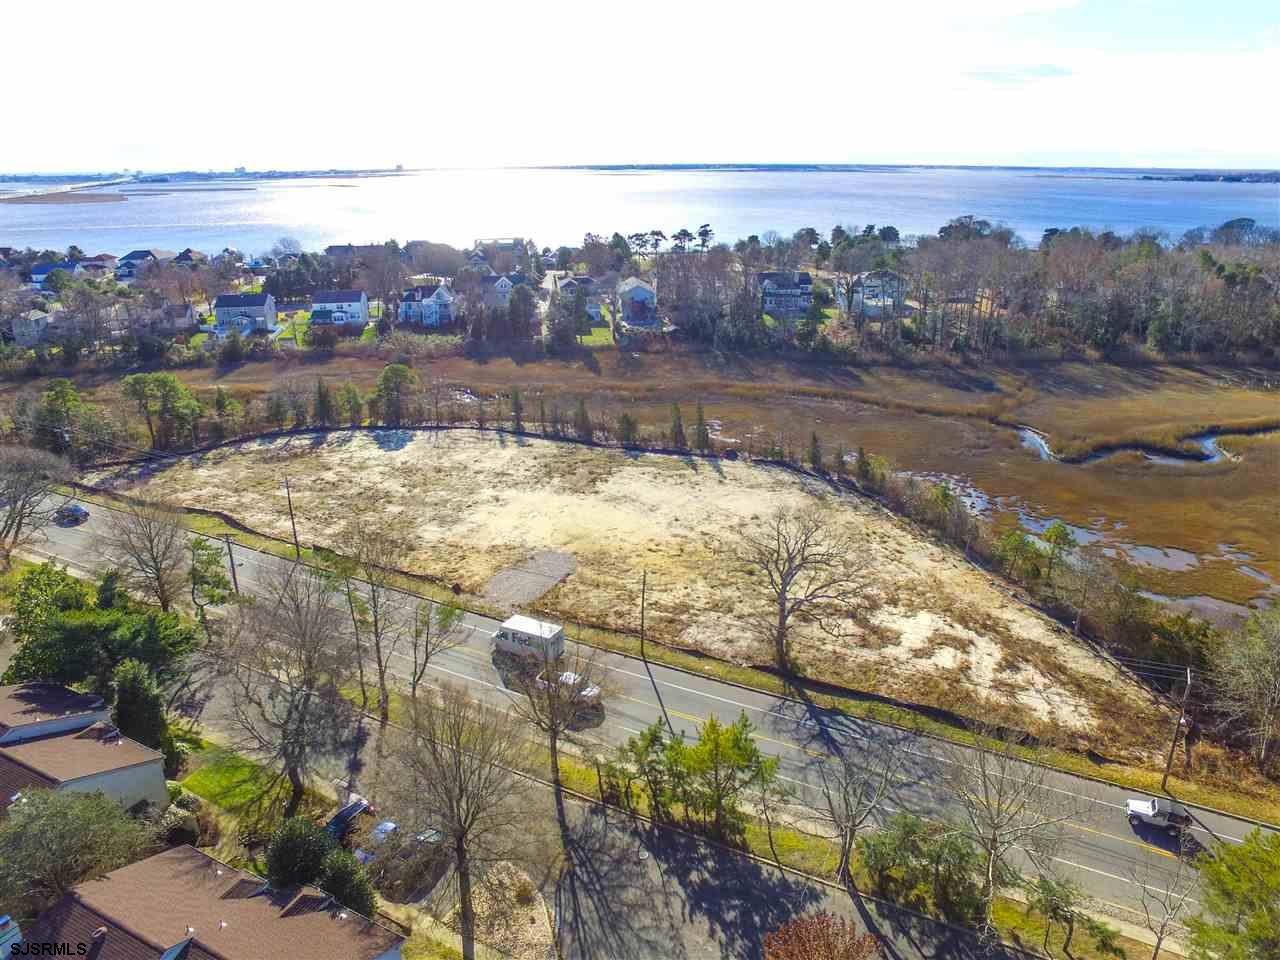 500 Mays Landing Rd, Somers Point, NJ 08244 - Somers Point, NJ real estate listing